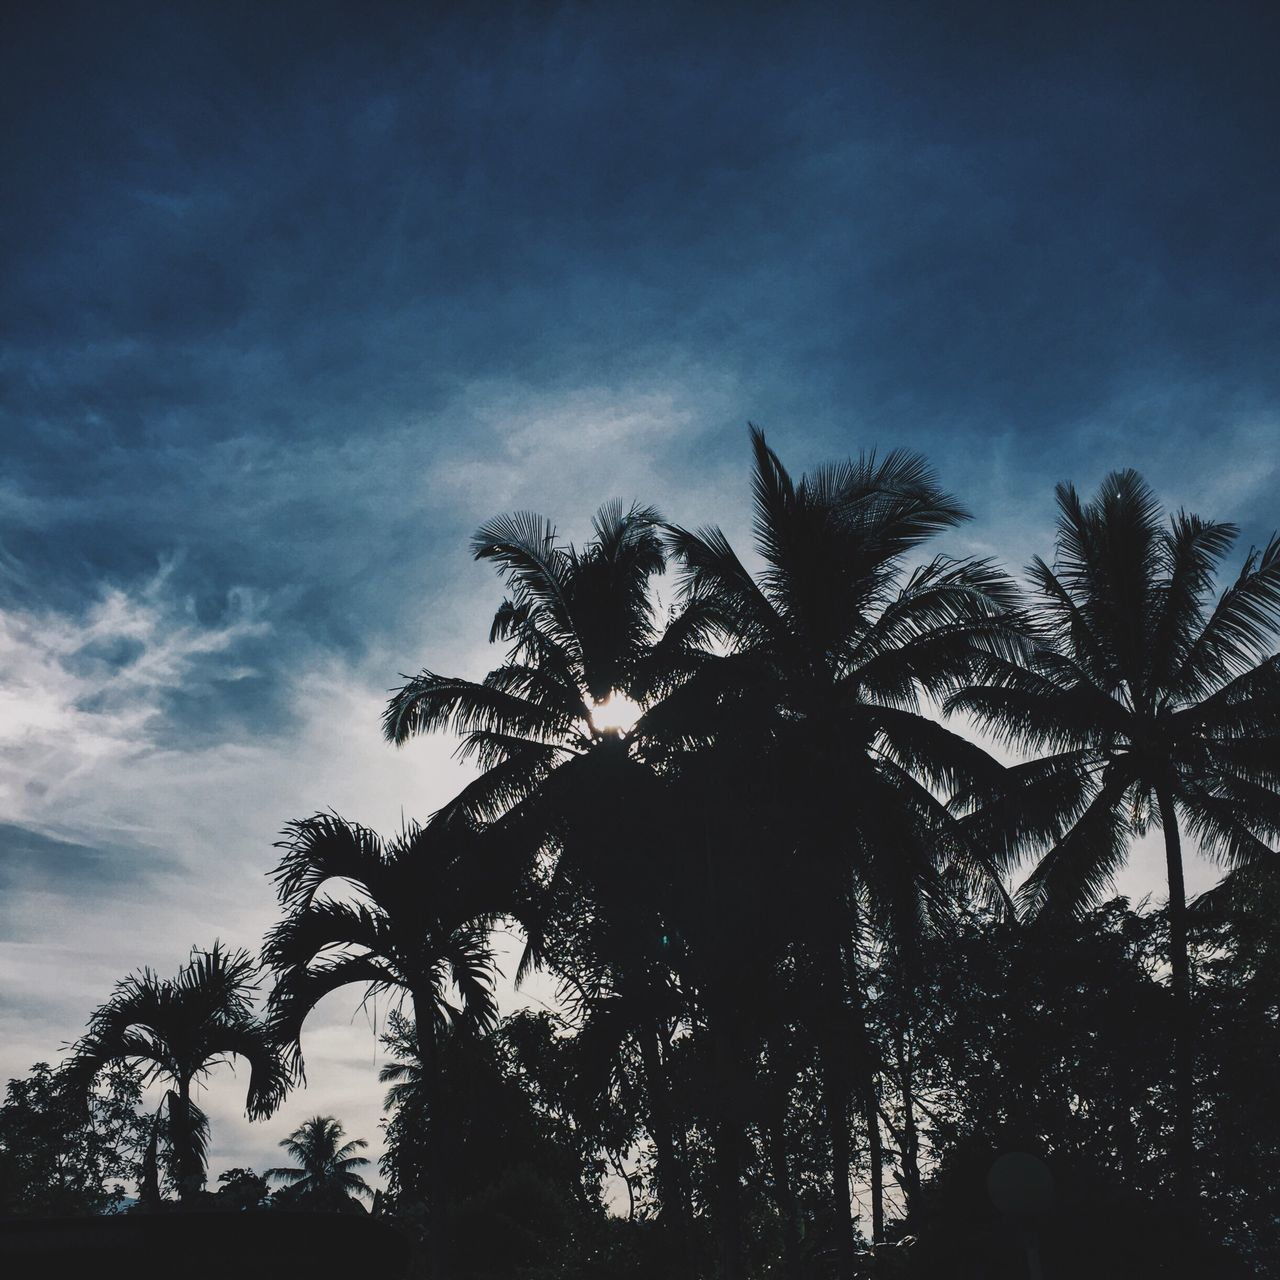 Low Angle View Of Silhouette Palm Trees Against Blue Sky